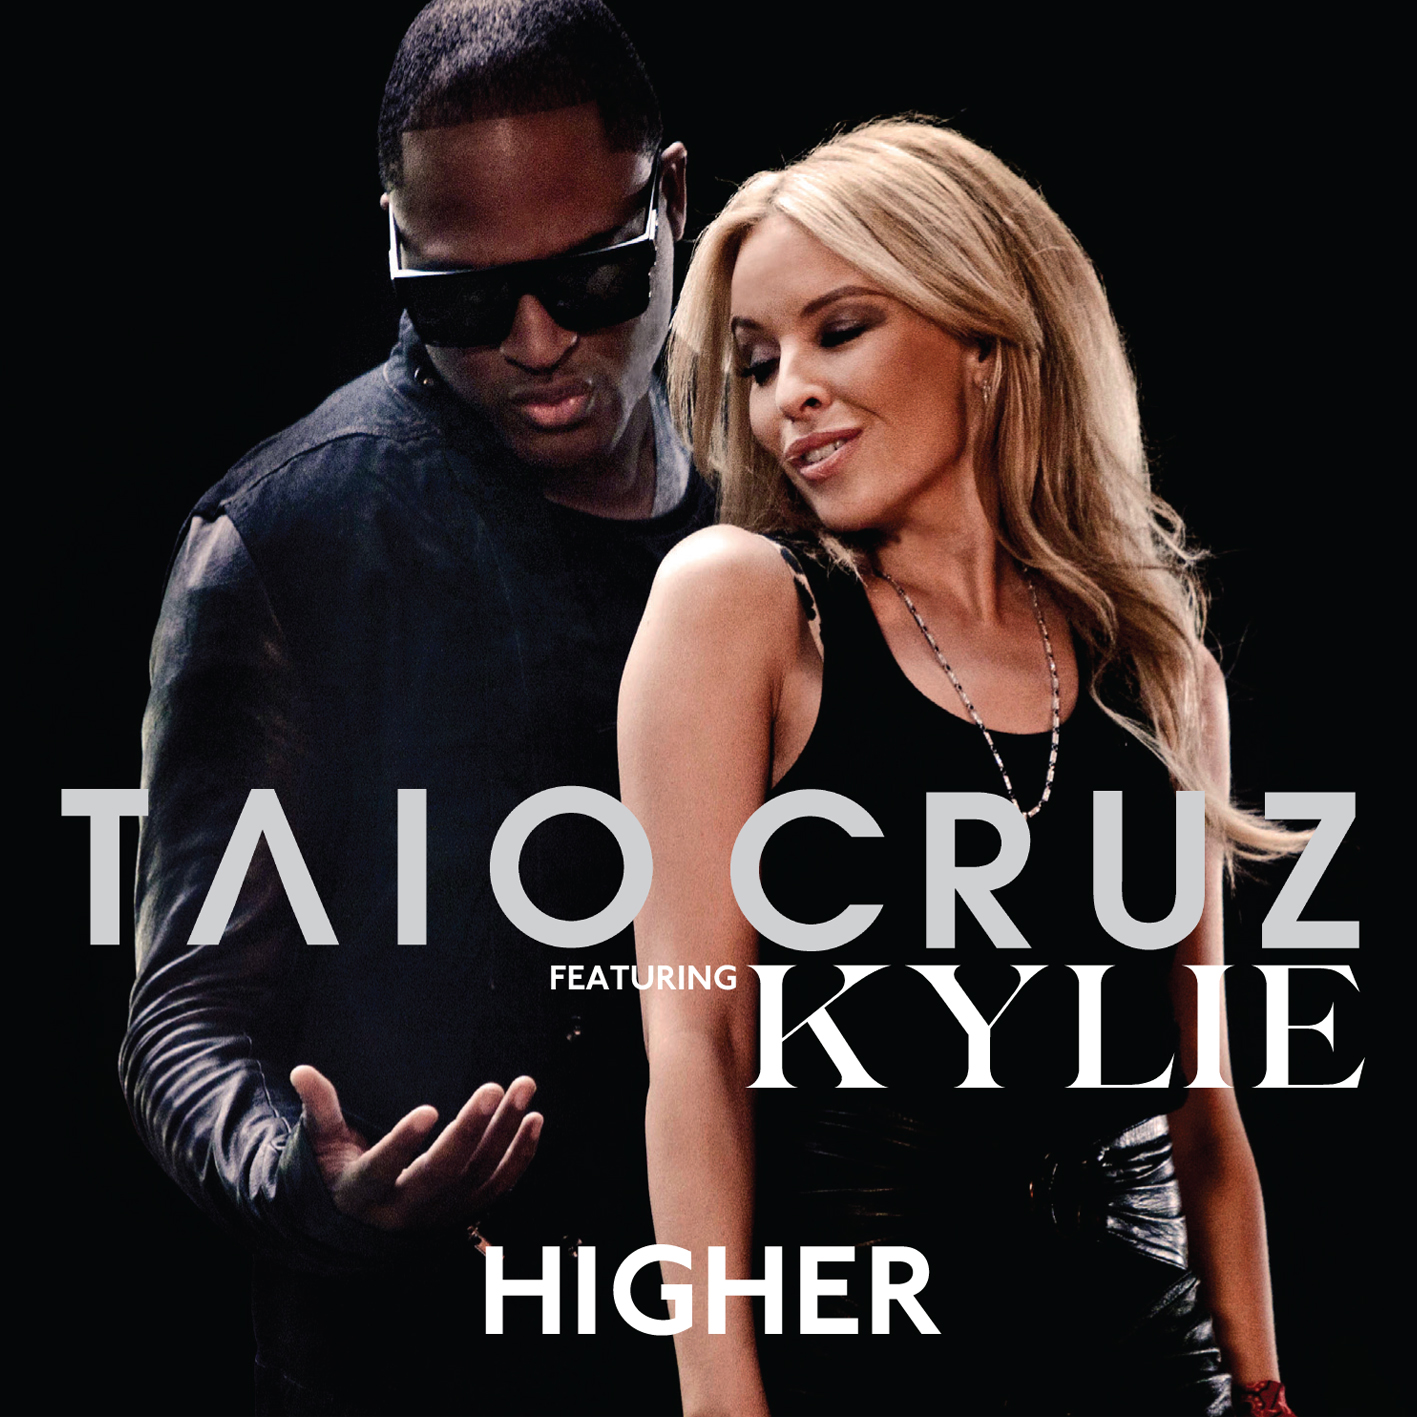 44. Taio Cruz - Higher (feat. Kylie Minogue)